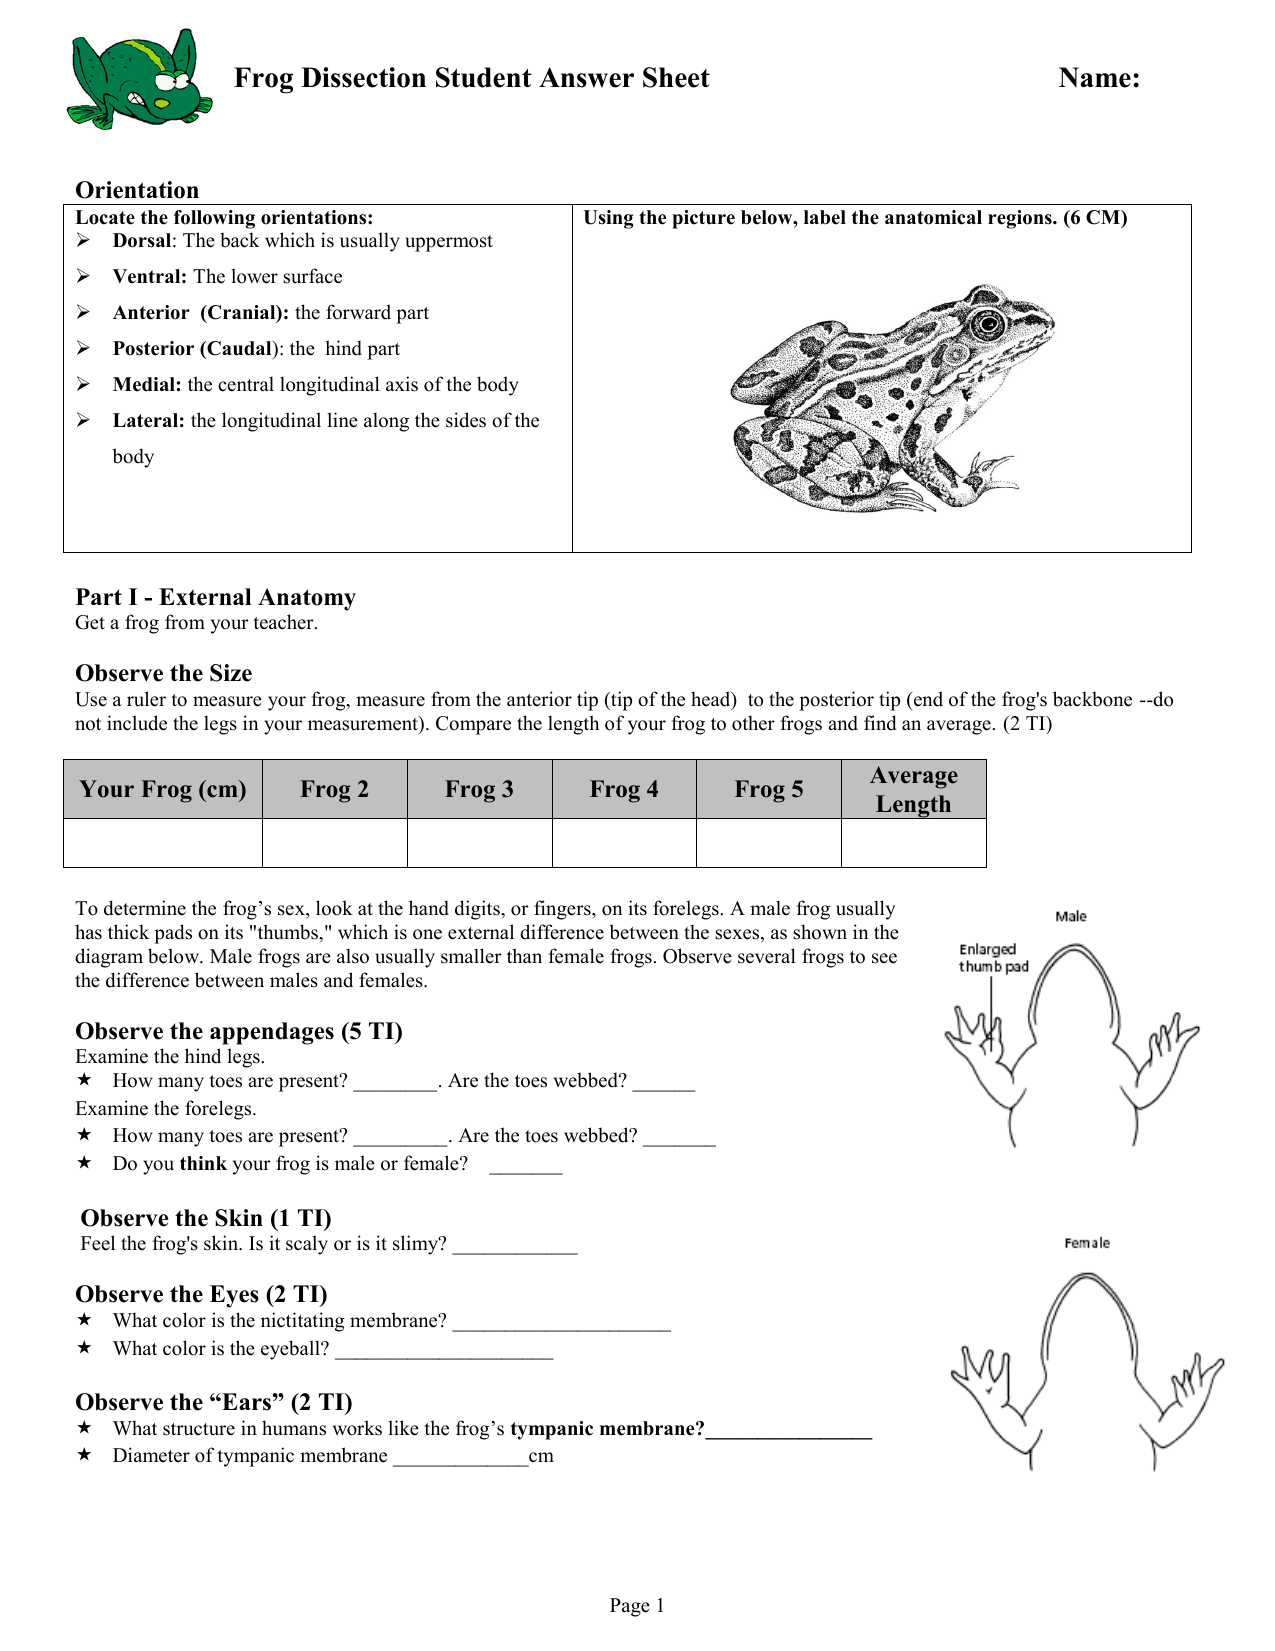 Net Frog Dissection Worksheet Answers